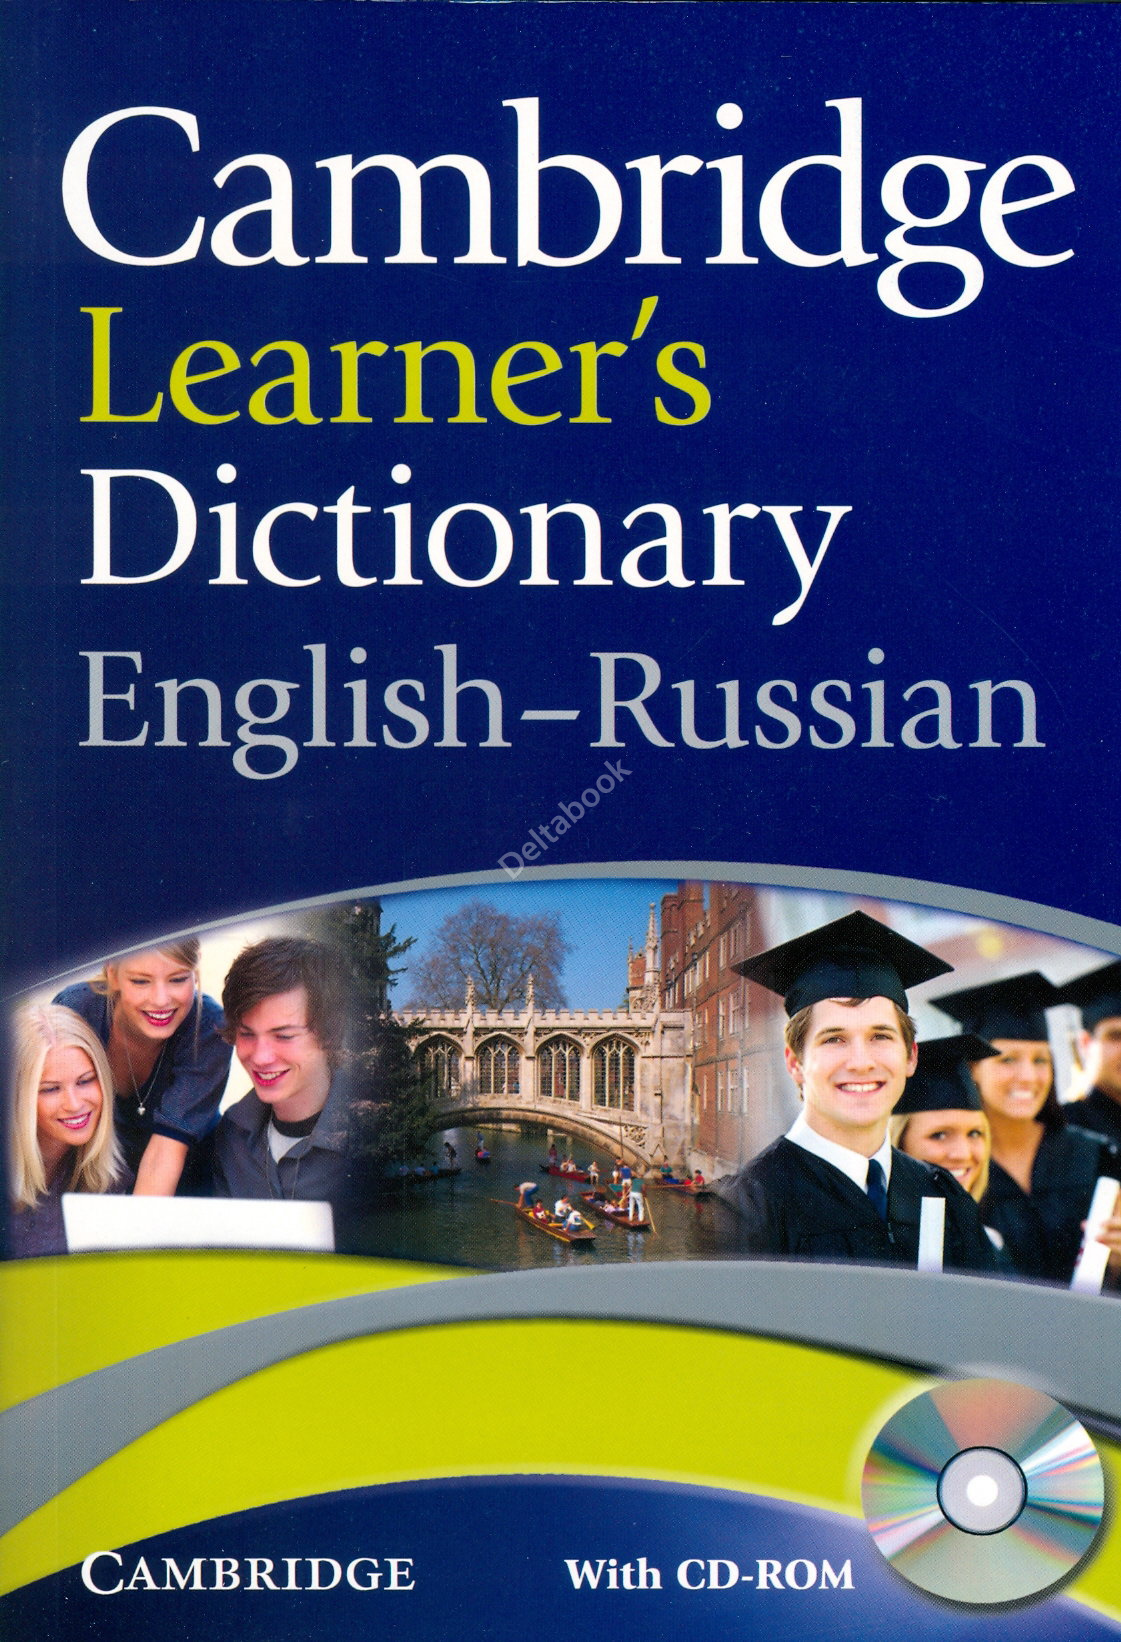 Cambridge Learner's Dictionary English-Russian + CD-ROM